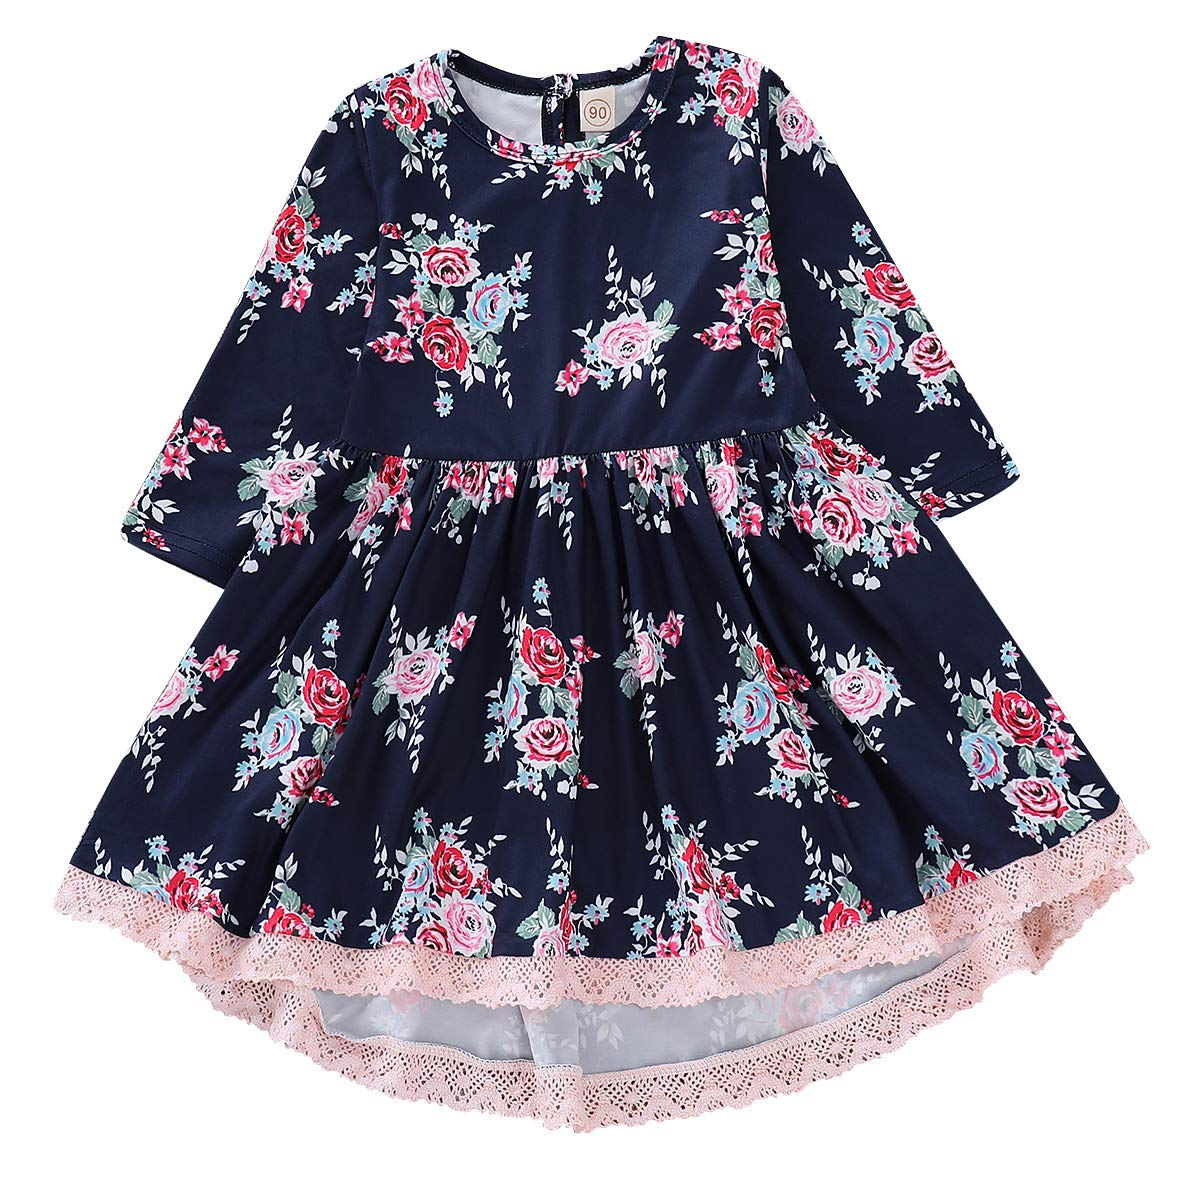 Baby Girls Dress Kids Girls Floral Rose Princess Lace Edge Dress Skirt Casual Clothes Costumes